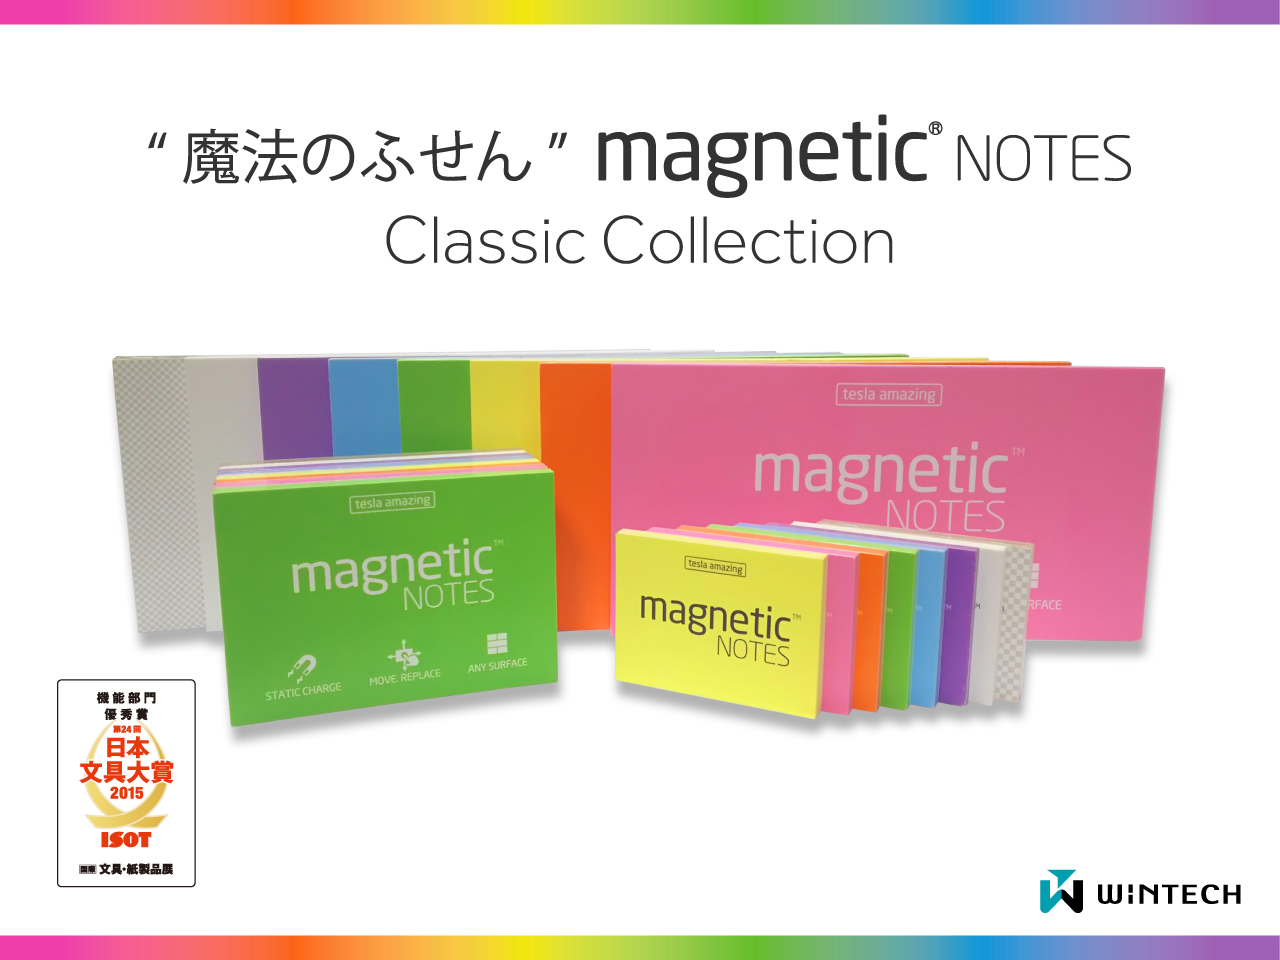 魔法のふせん magnetic NOTES Classic Collection